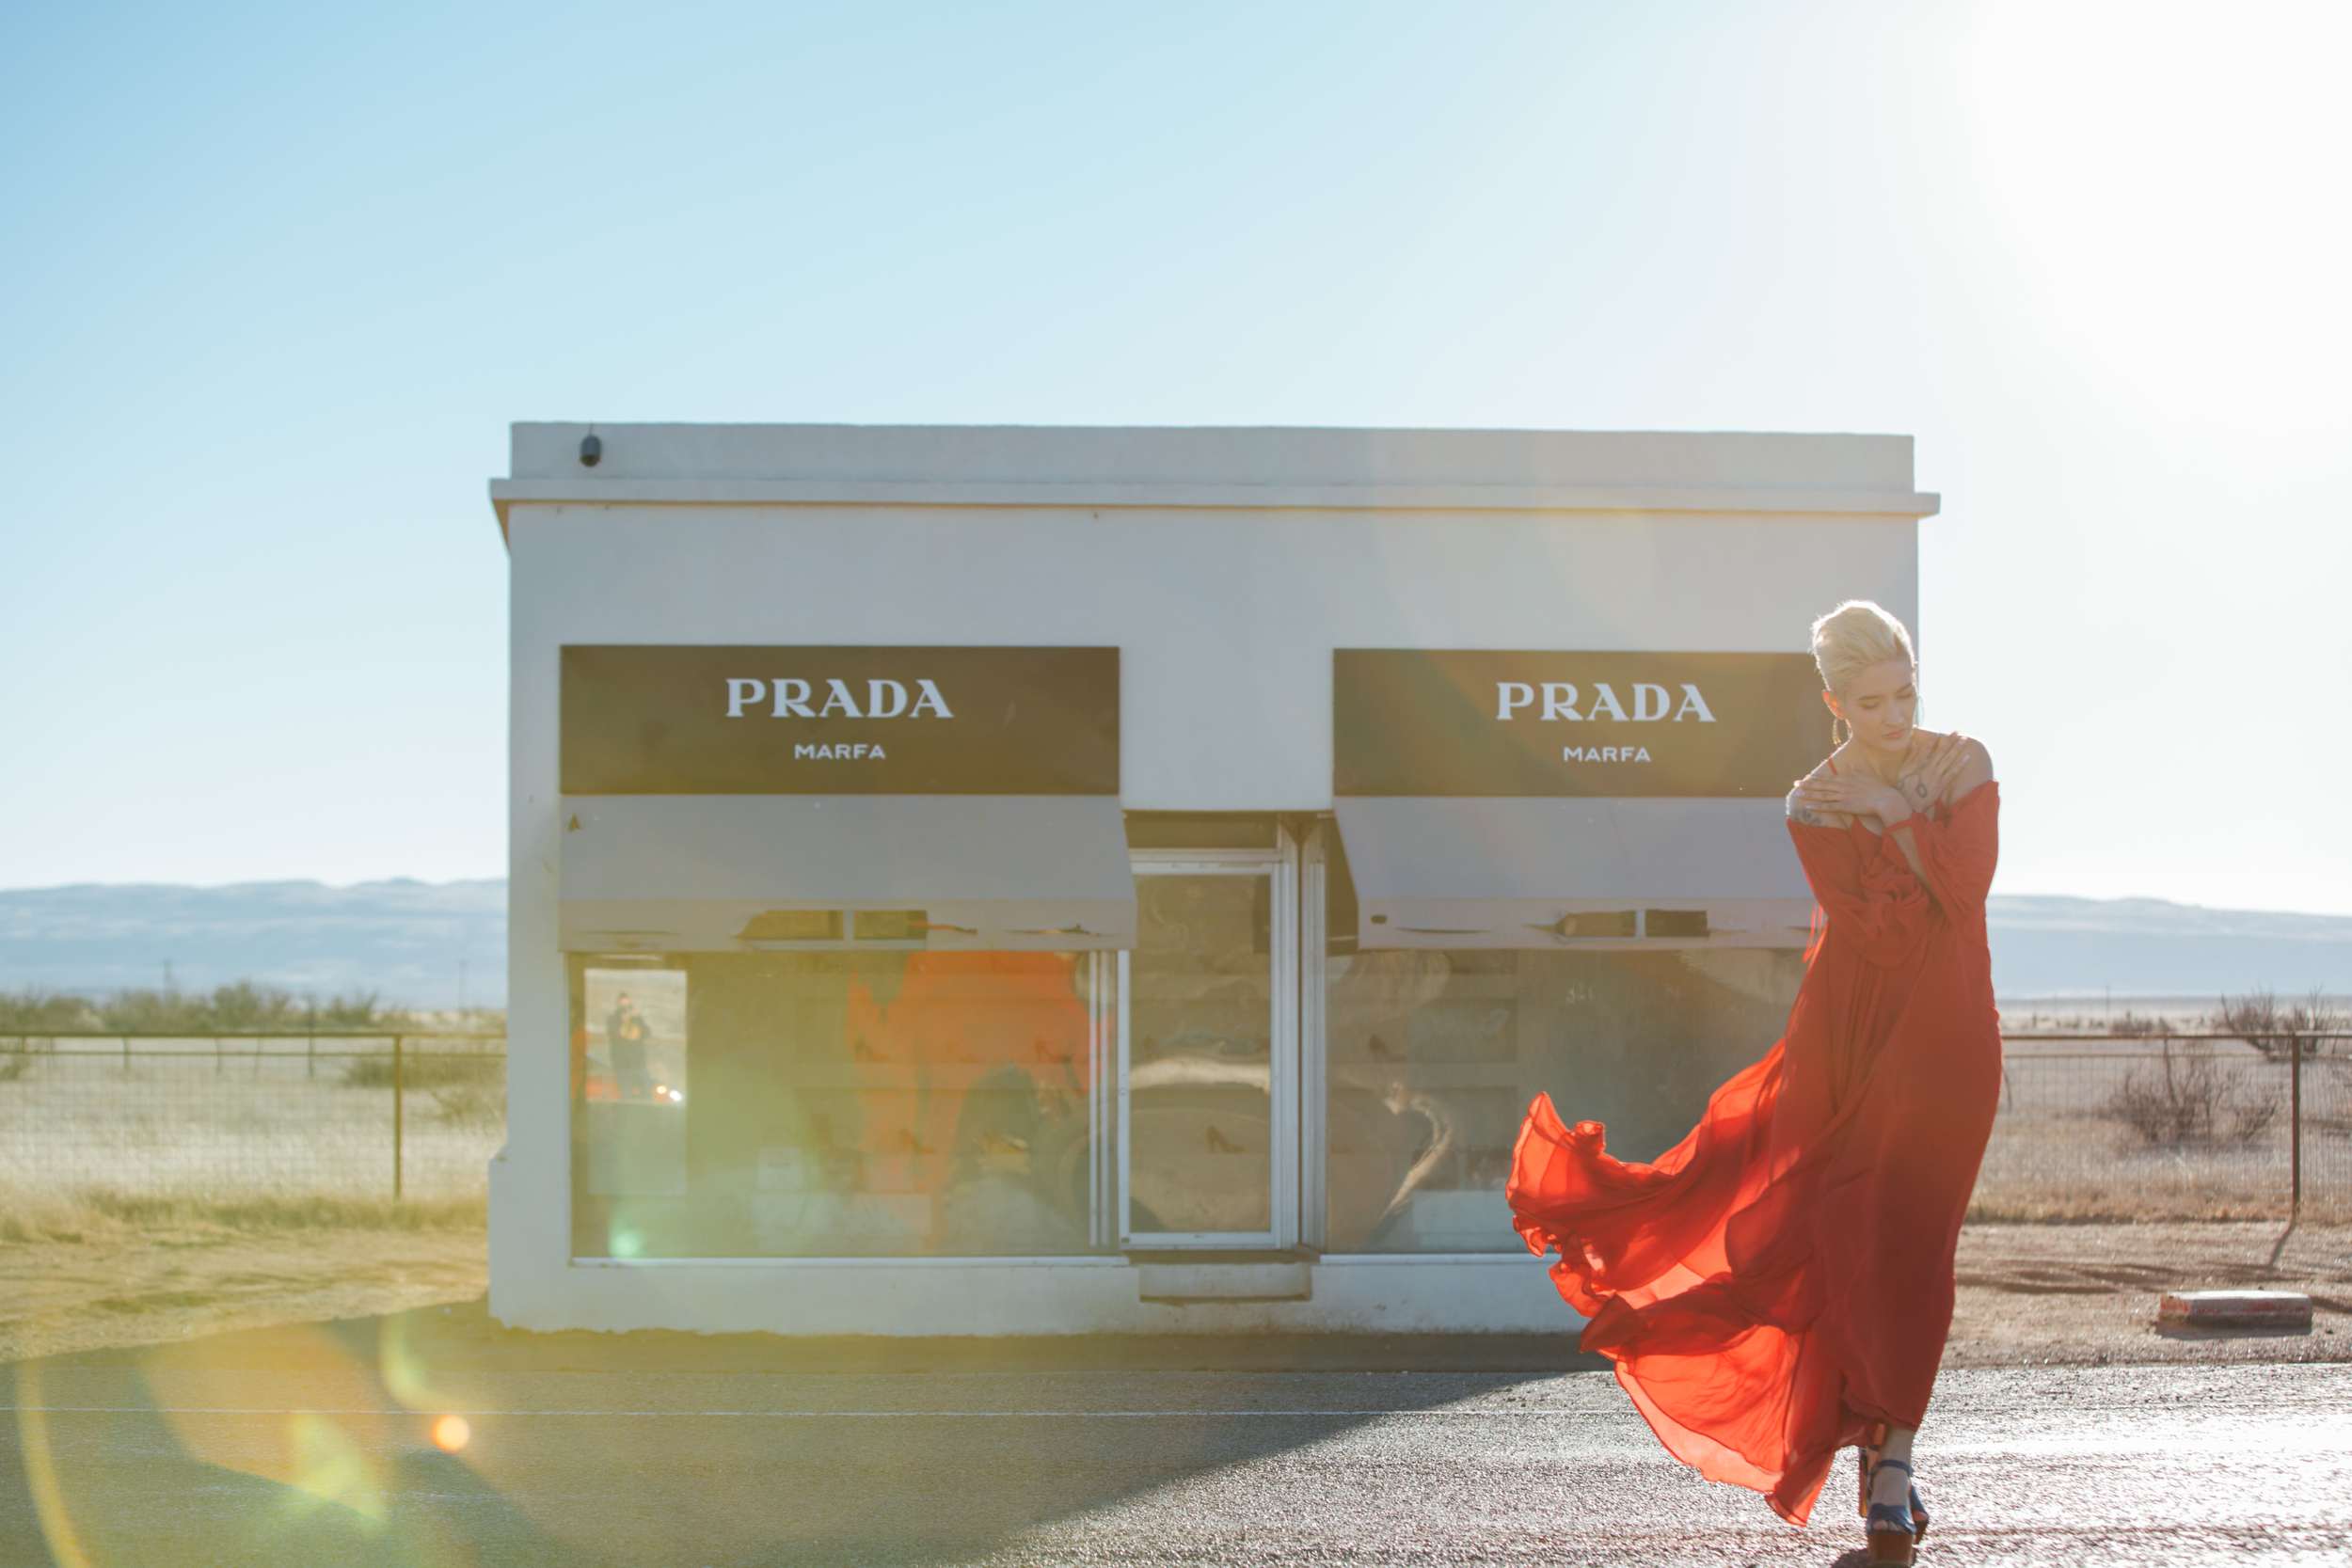 Prada Marfa Fashion Lifestyle Photoshoot with The Finches